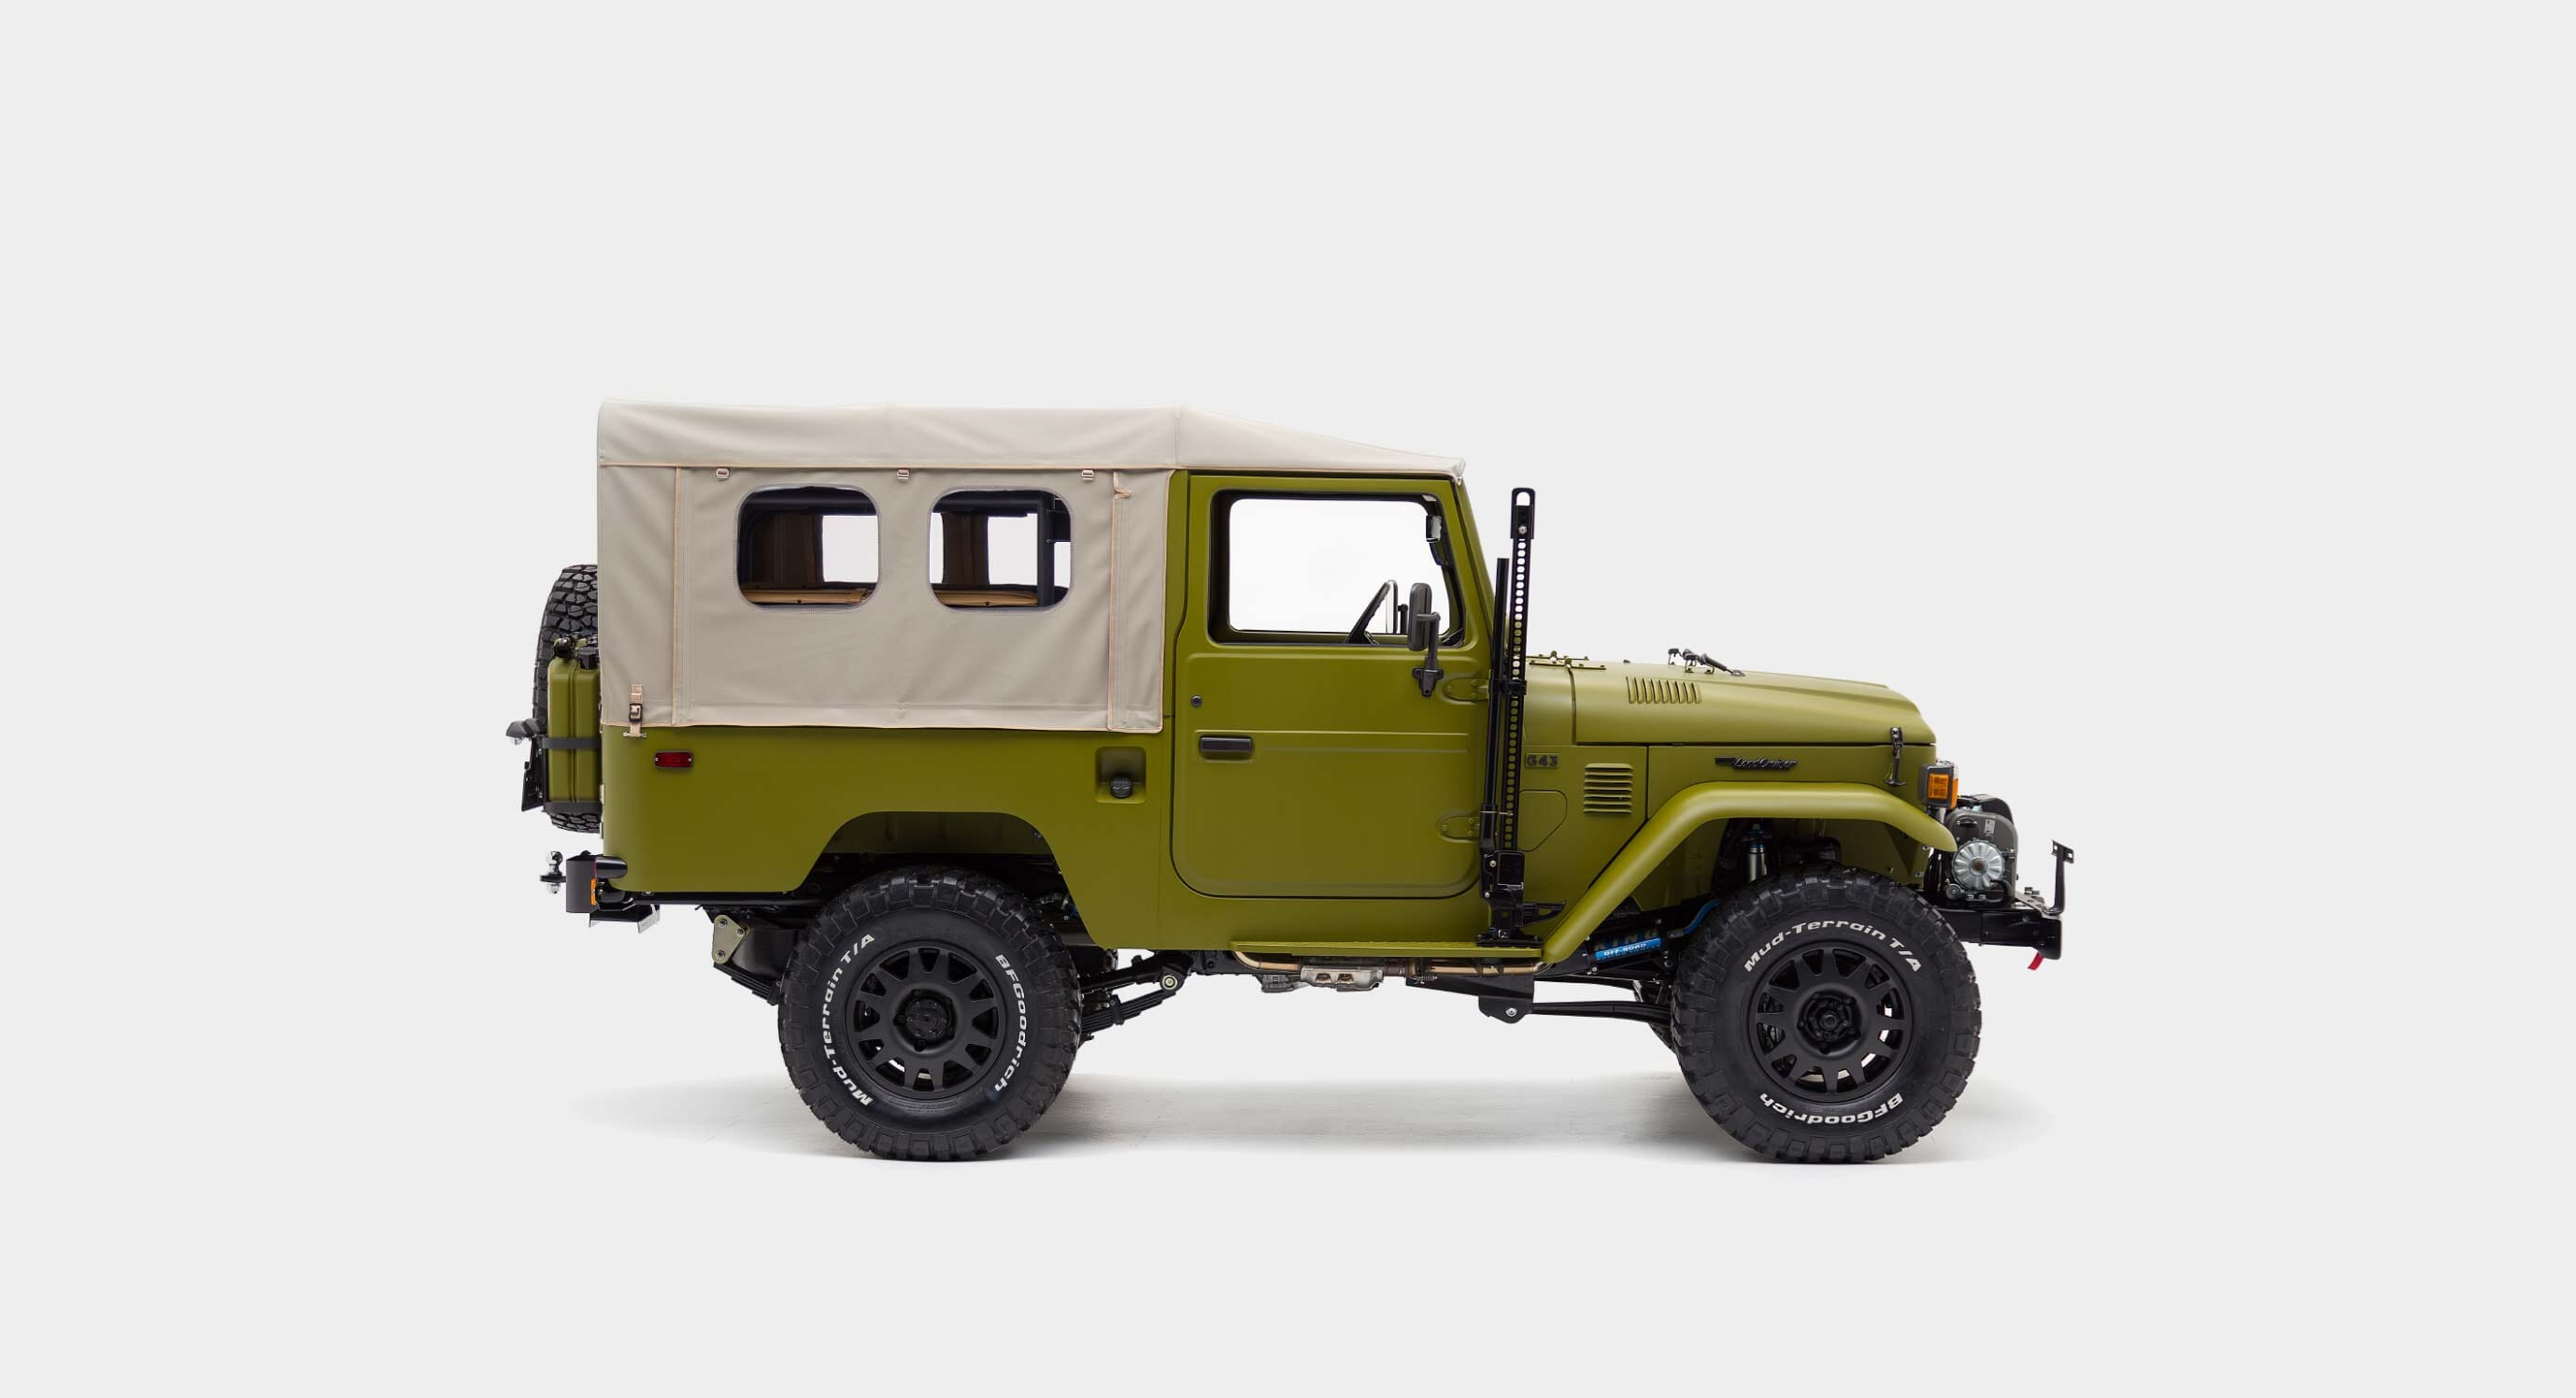 This Toyota Land Cruiser Deserves To Be Set Free In The Wild